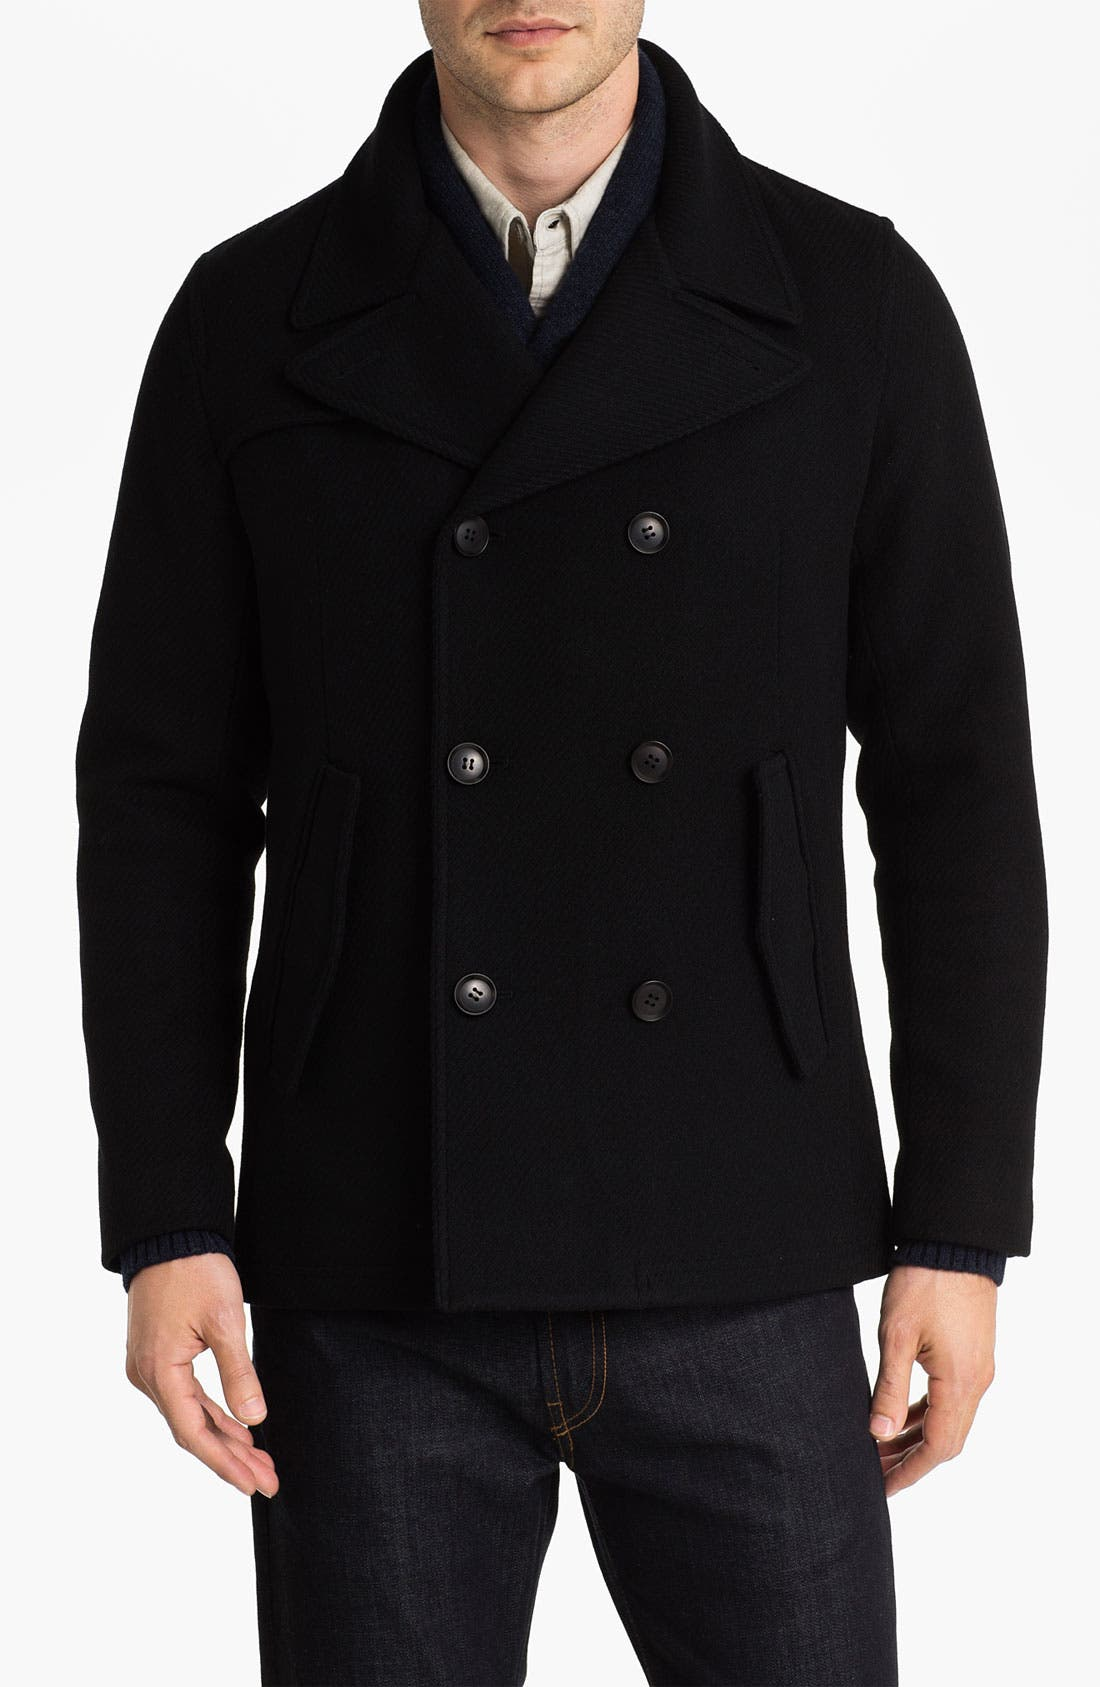 Alternate Image 1 Selected - Zachary Prell 'Franklin' Double Breasted Wool Blend Coat